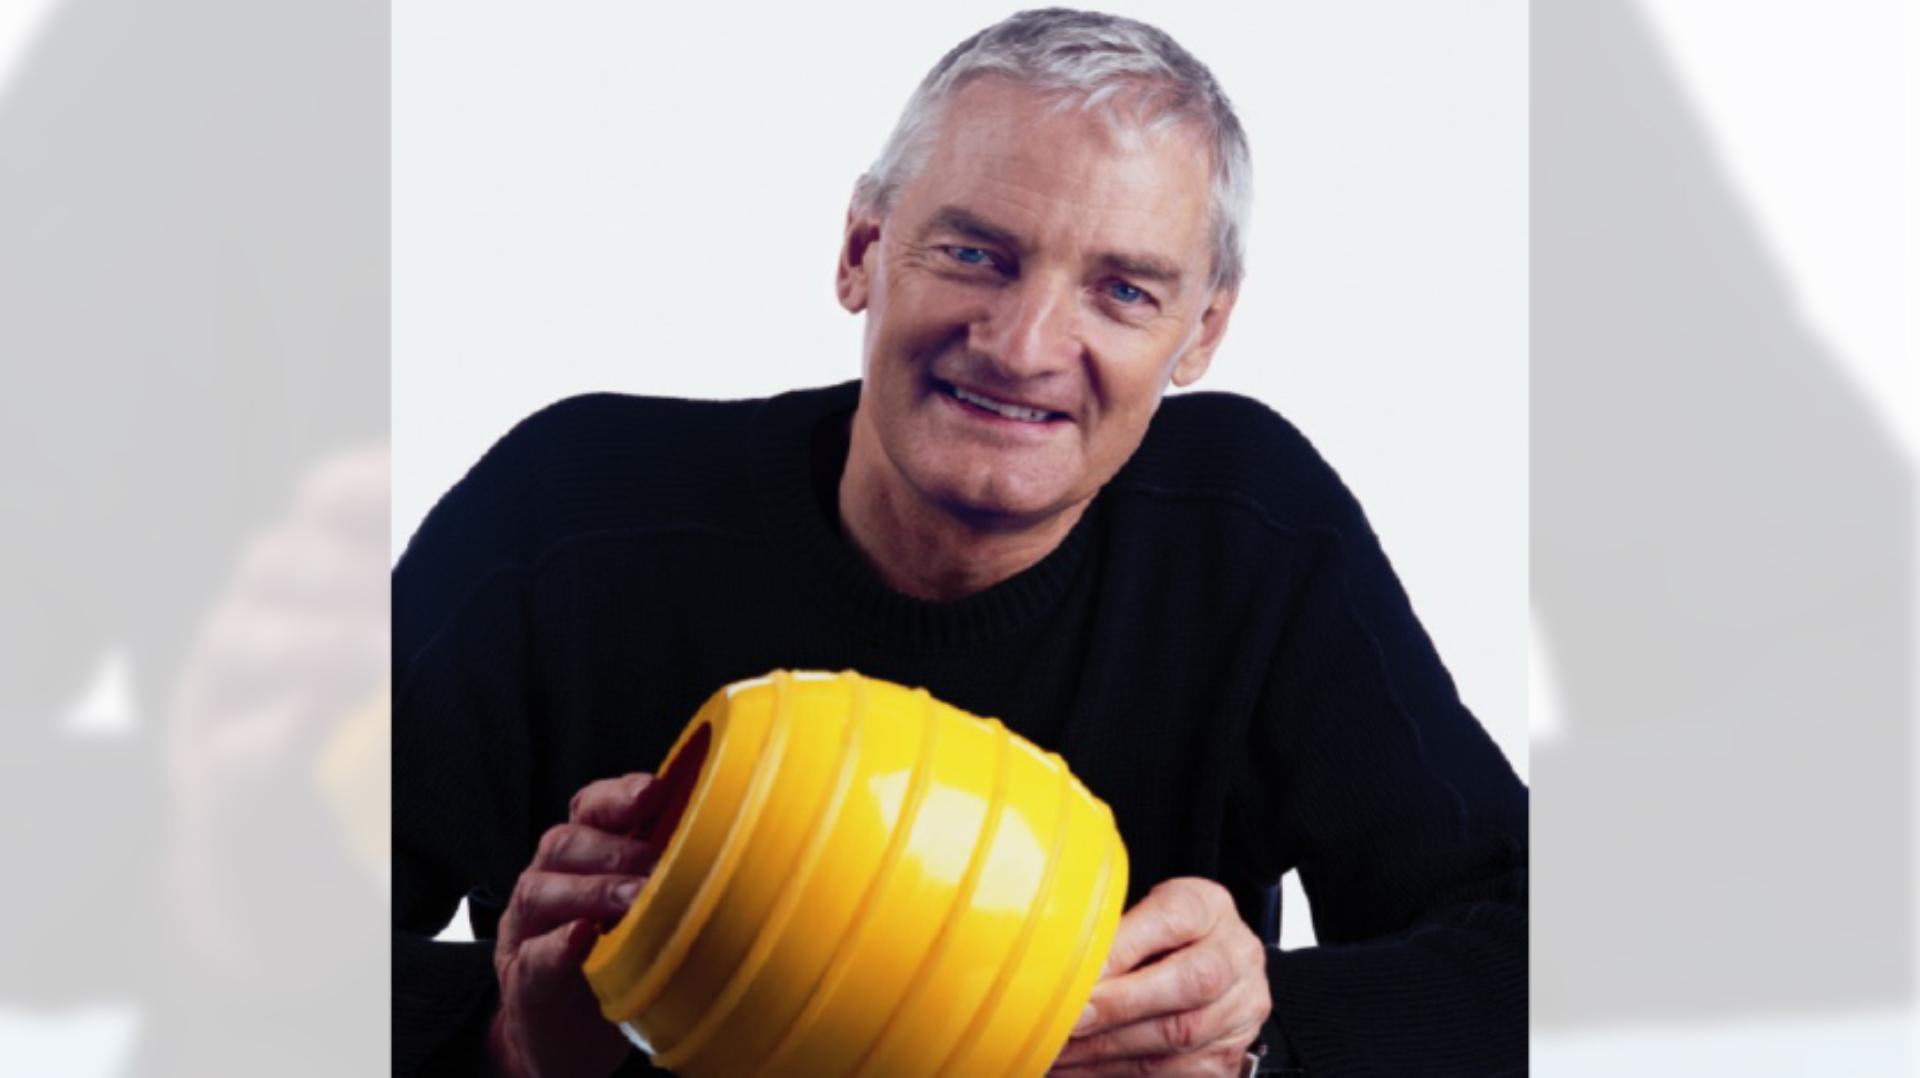 Close up James Dyson photo, with James holding a ball from the Ballbarrow design